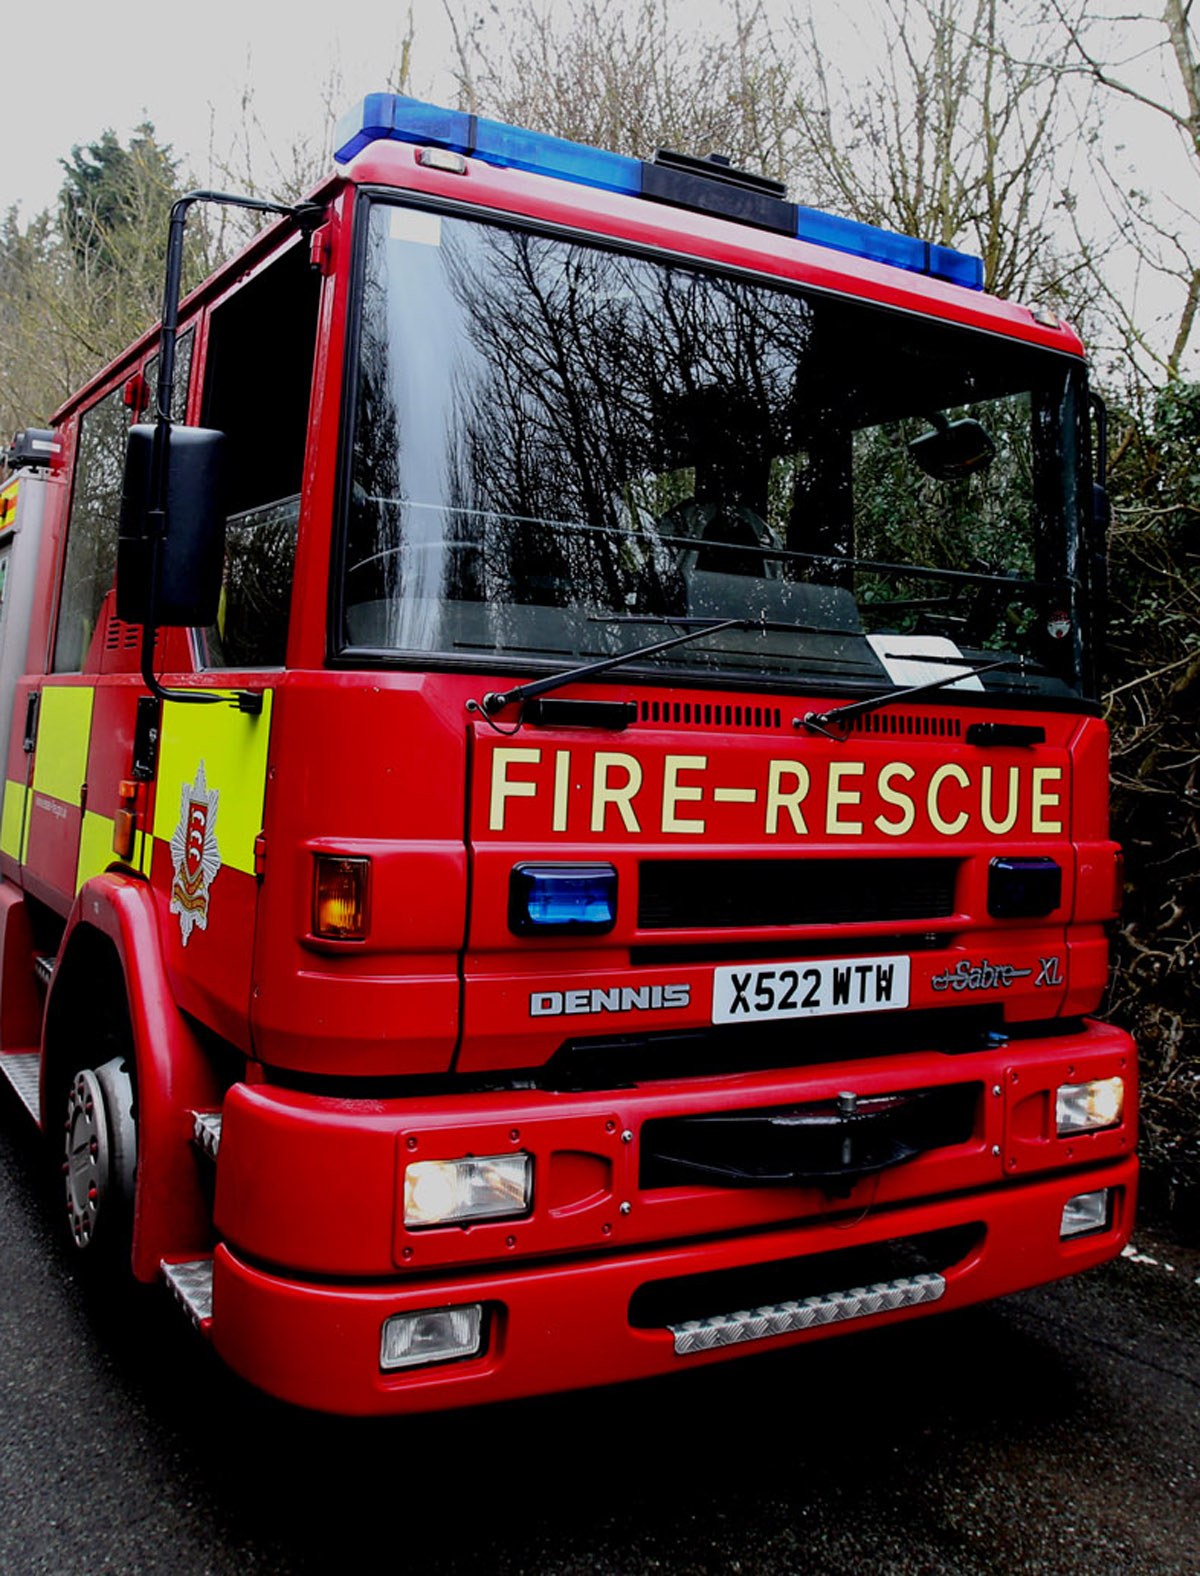 Parked cars are delaying fire crews in Ongar (file image).